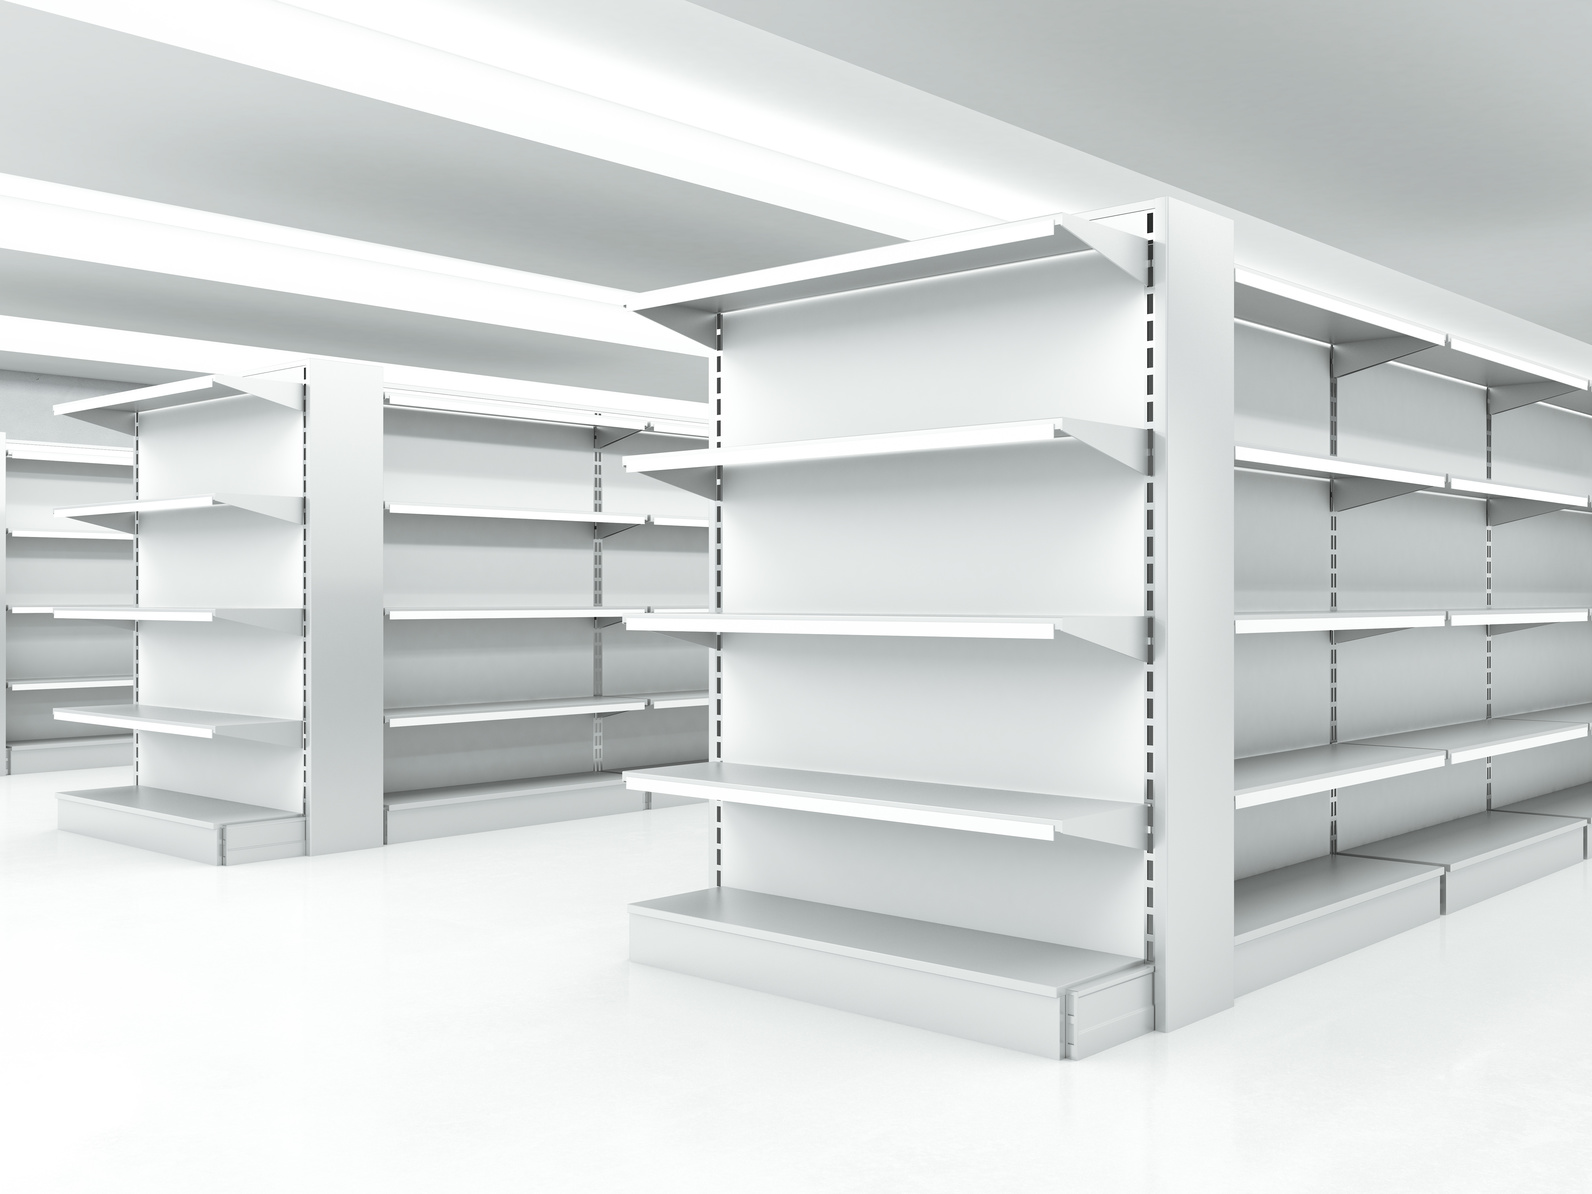 white clean shelves in market. 3d render